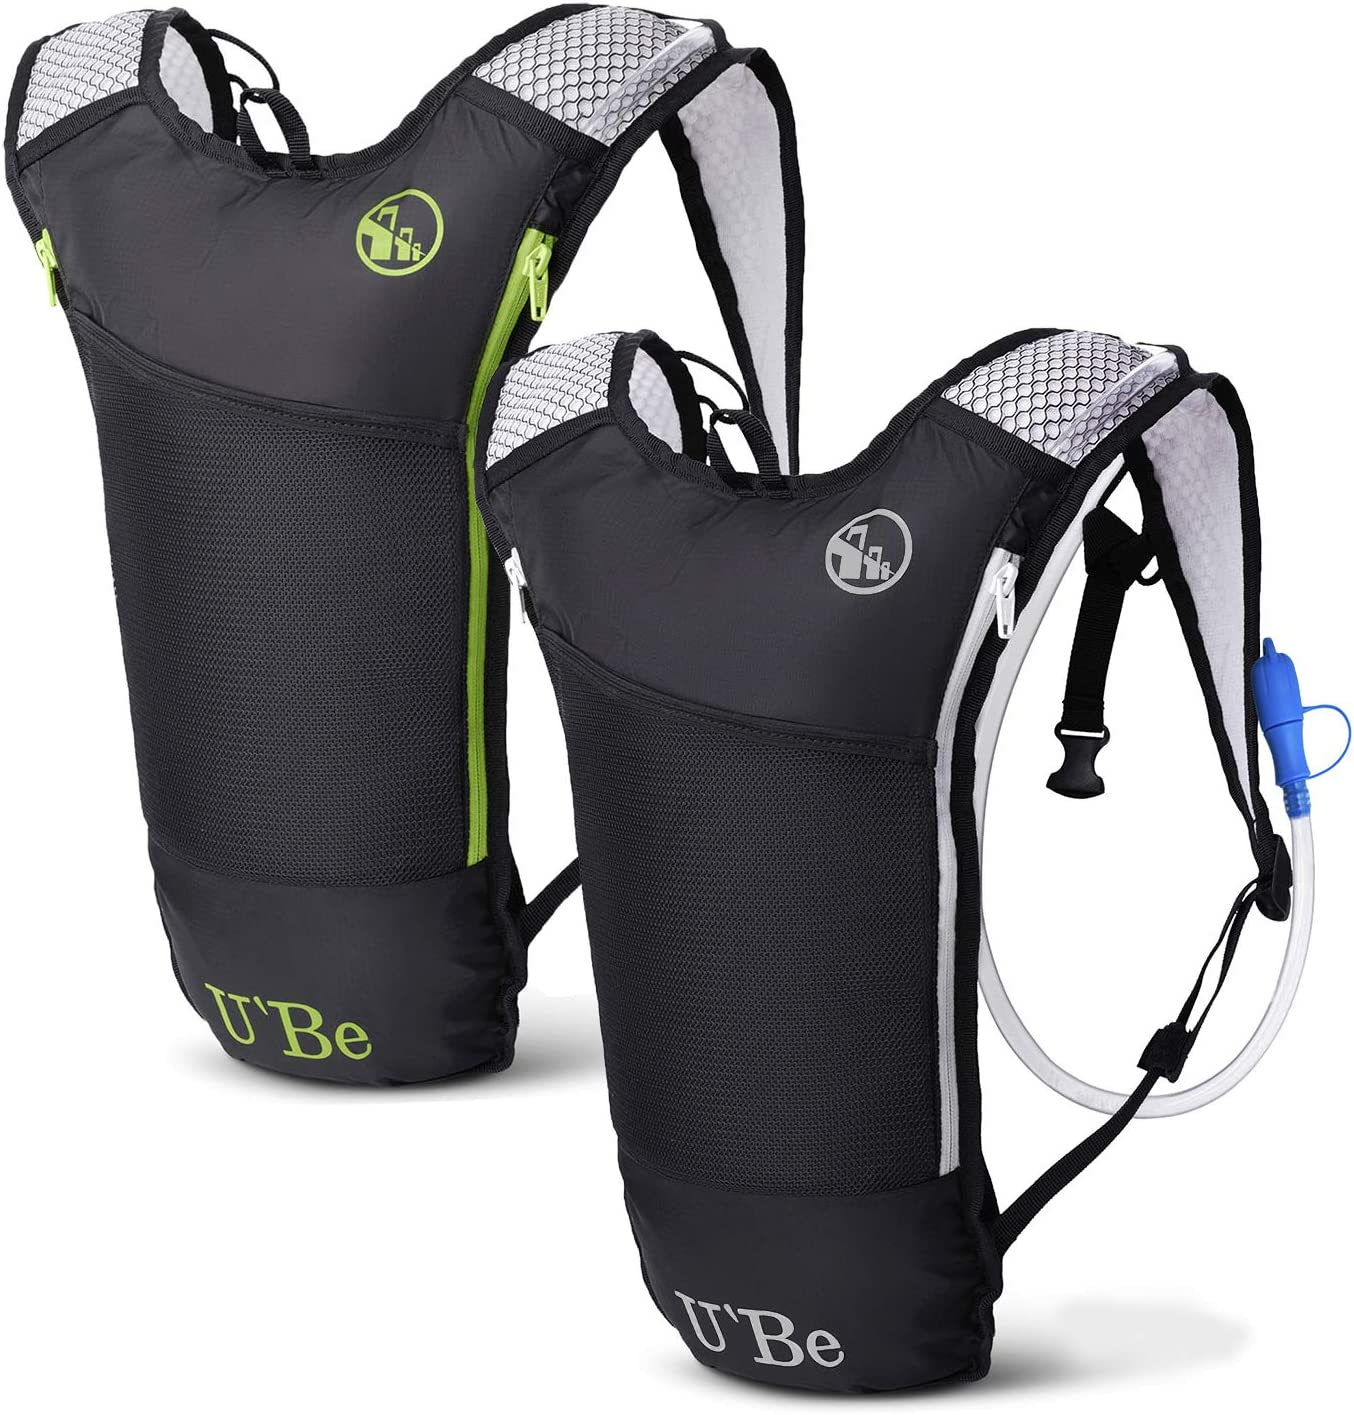 2 Litre Hydration Pack//Backpack Bag Running//Cycling with Water Camelbak Rucksack